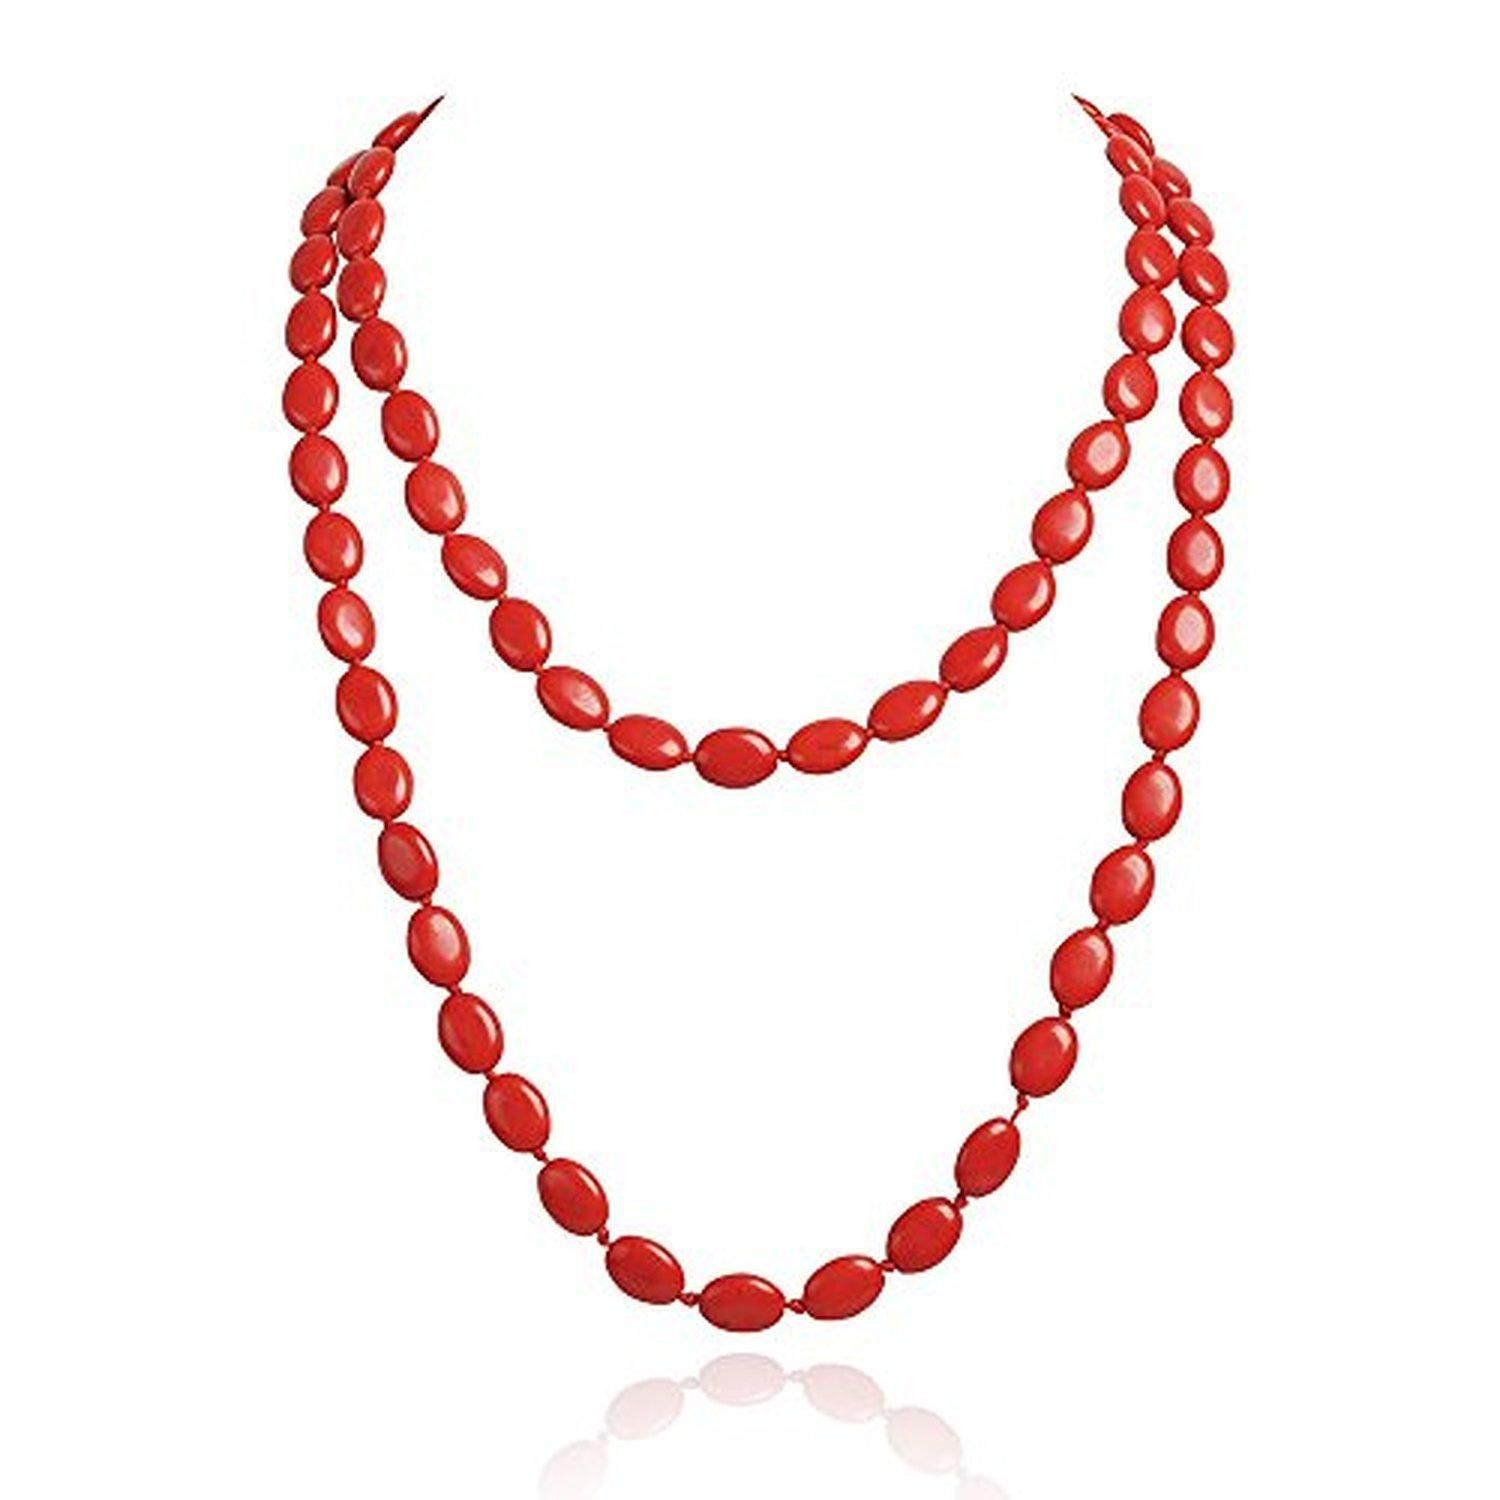 Jane stone Coral Red Beaded Trendy Prom Party Jewelry Clothing Evening Long Necklace (Fn1274-Red) - Brought to you by Avarsha.com